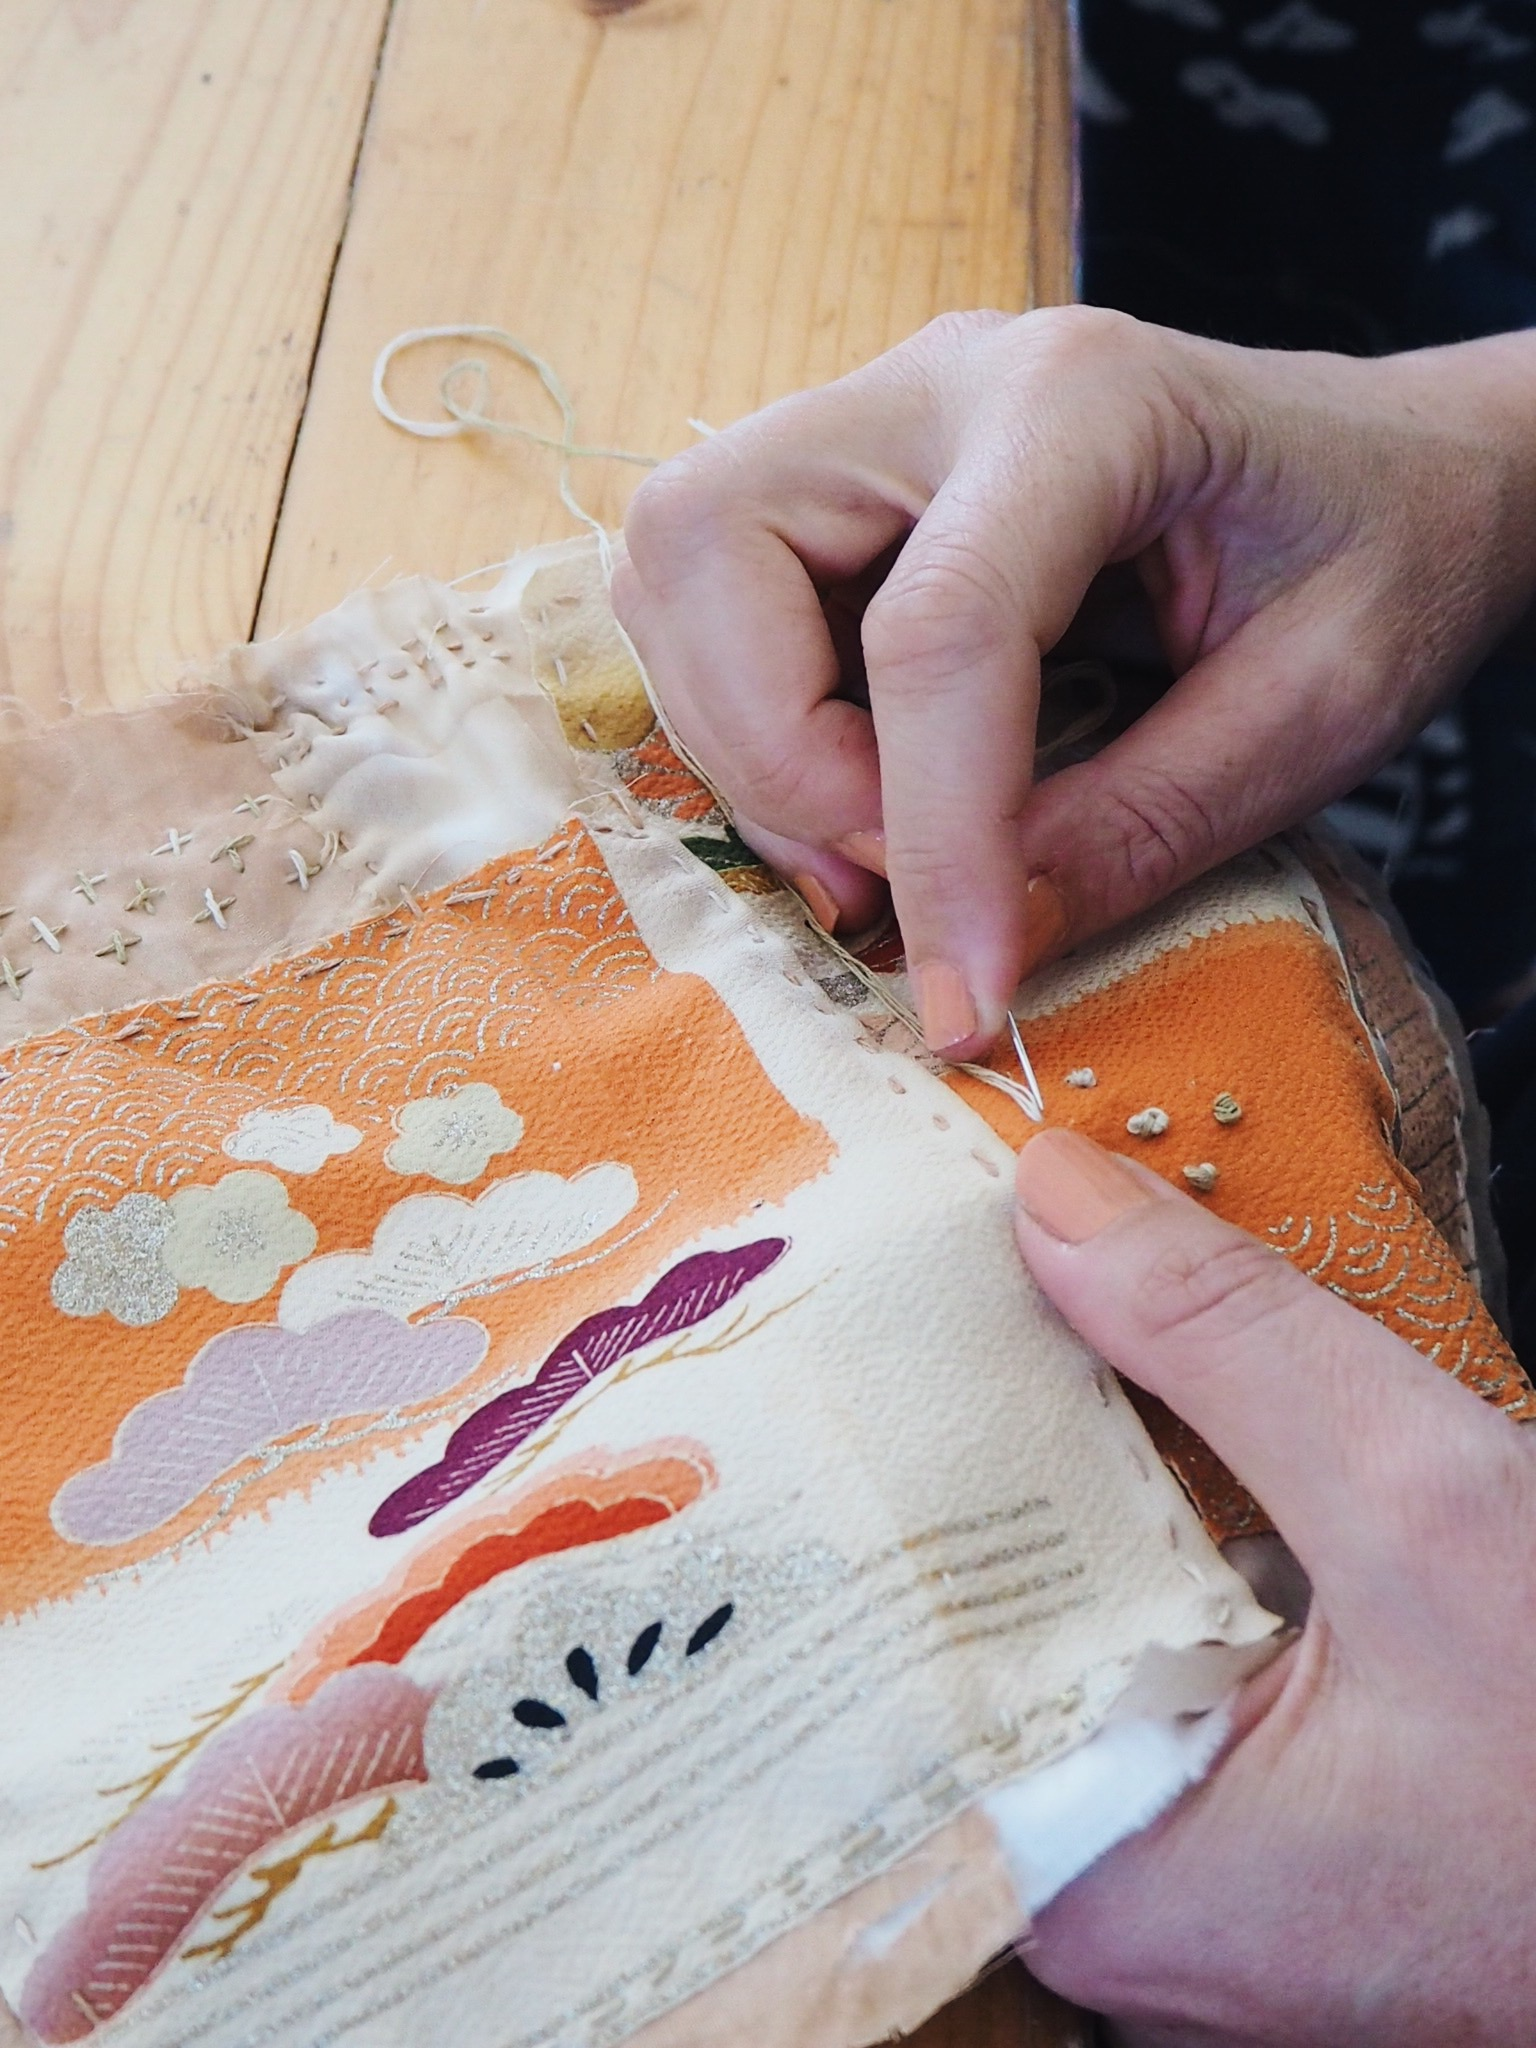 Ellie Beck Petalplum blog Mindful stitching for slow living